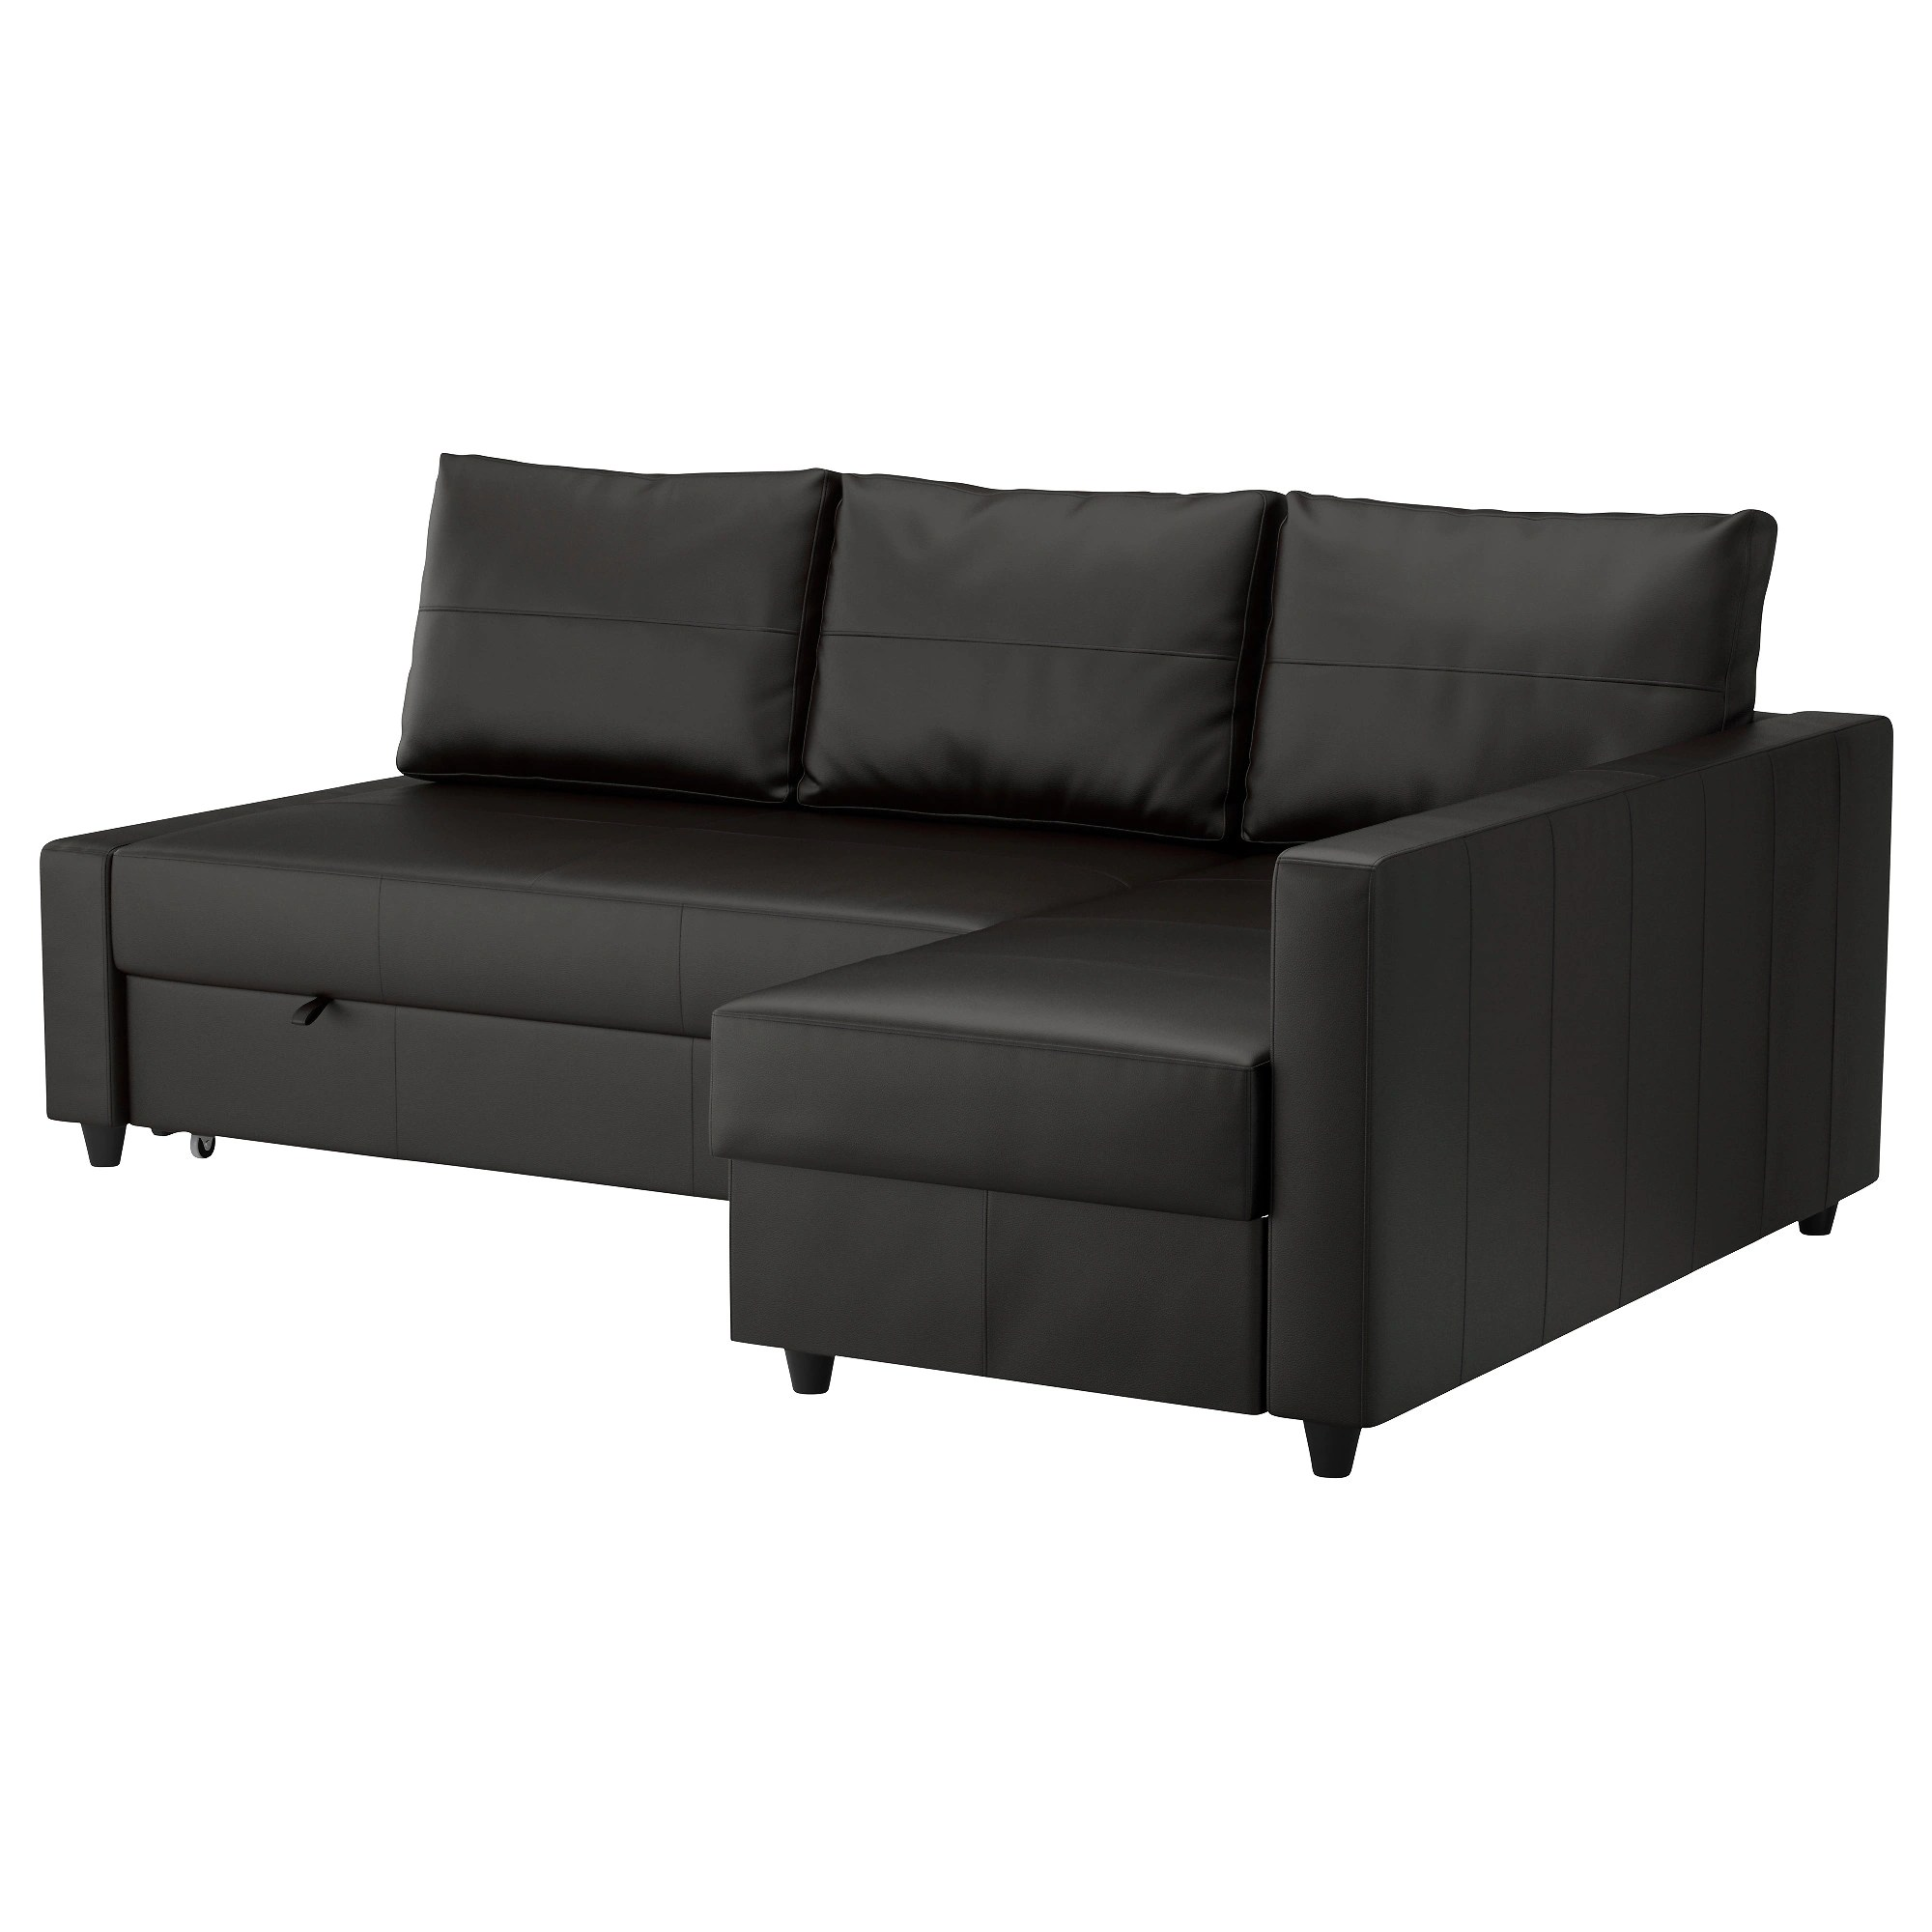 Sofa X Long Friheten Sleeper Sectional 3 Seat W Storage Skiftebo Dark Gray